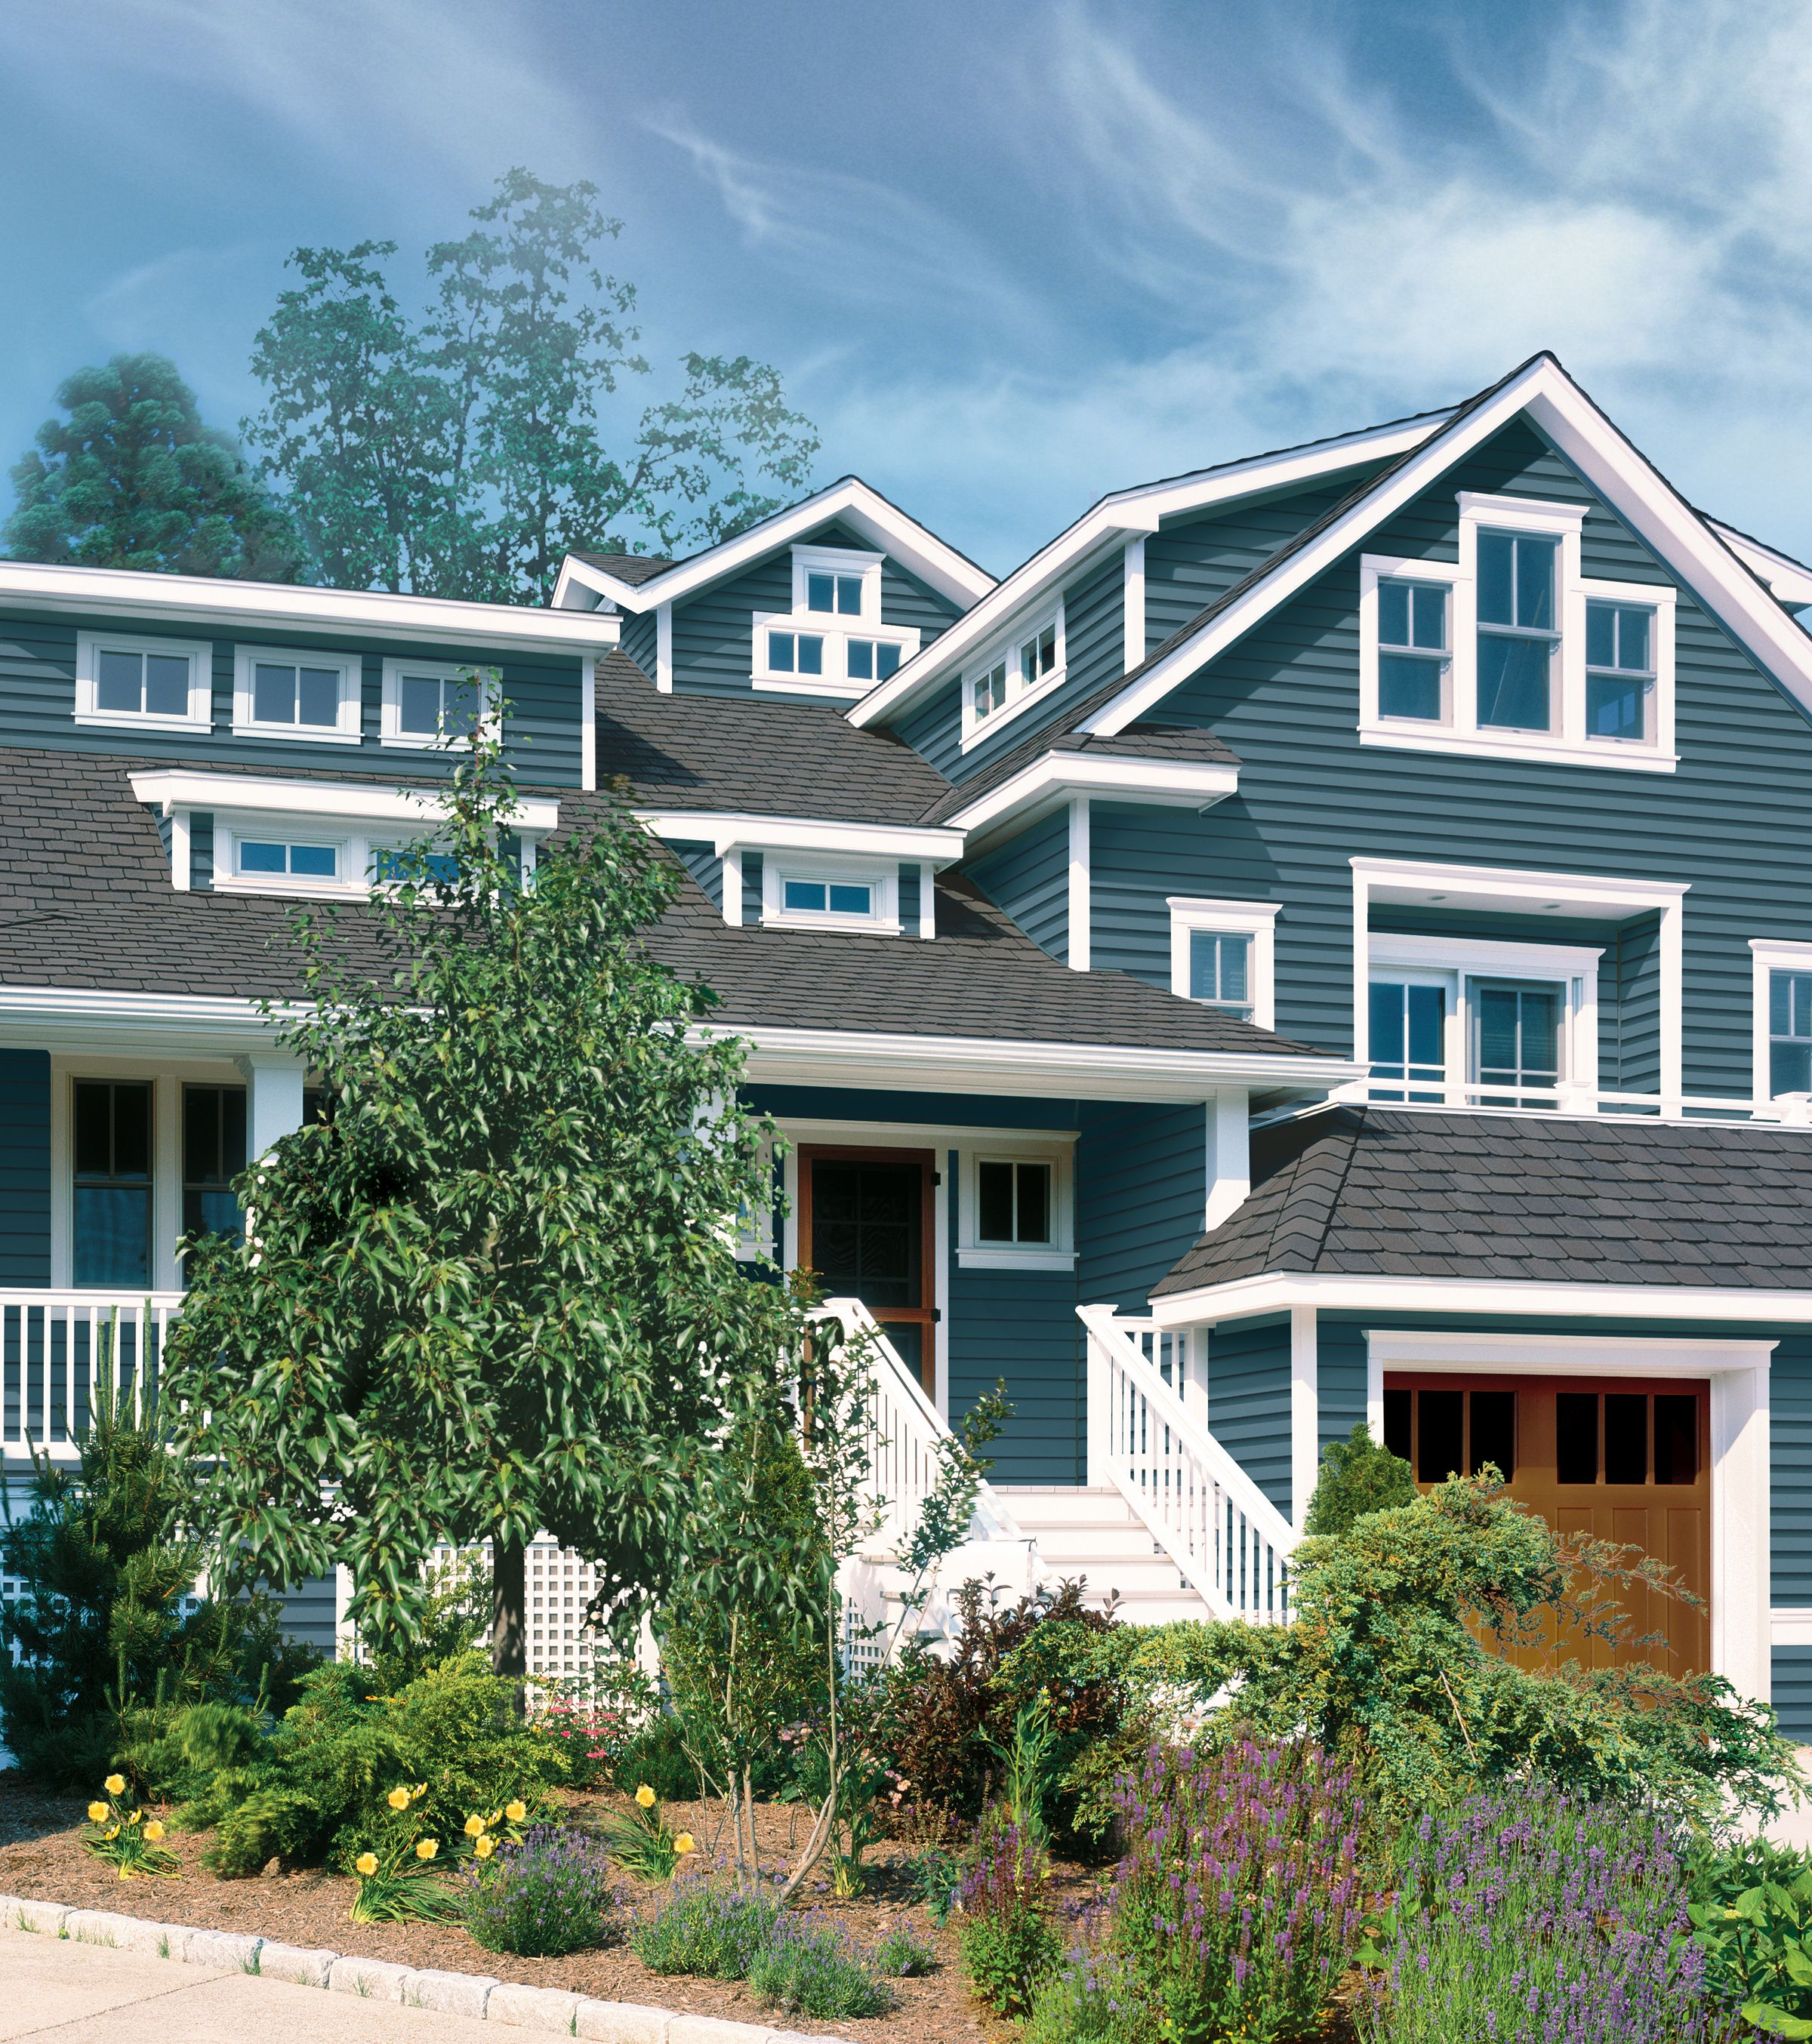 CertainTeed - Siding - Monogram - Pacific Blue | Siding ...